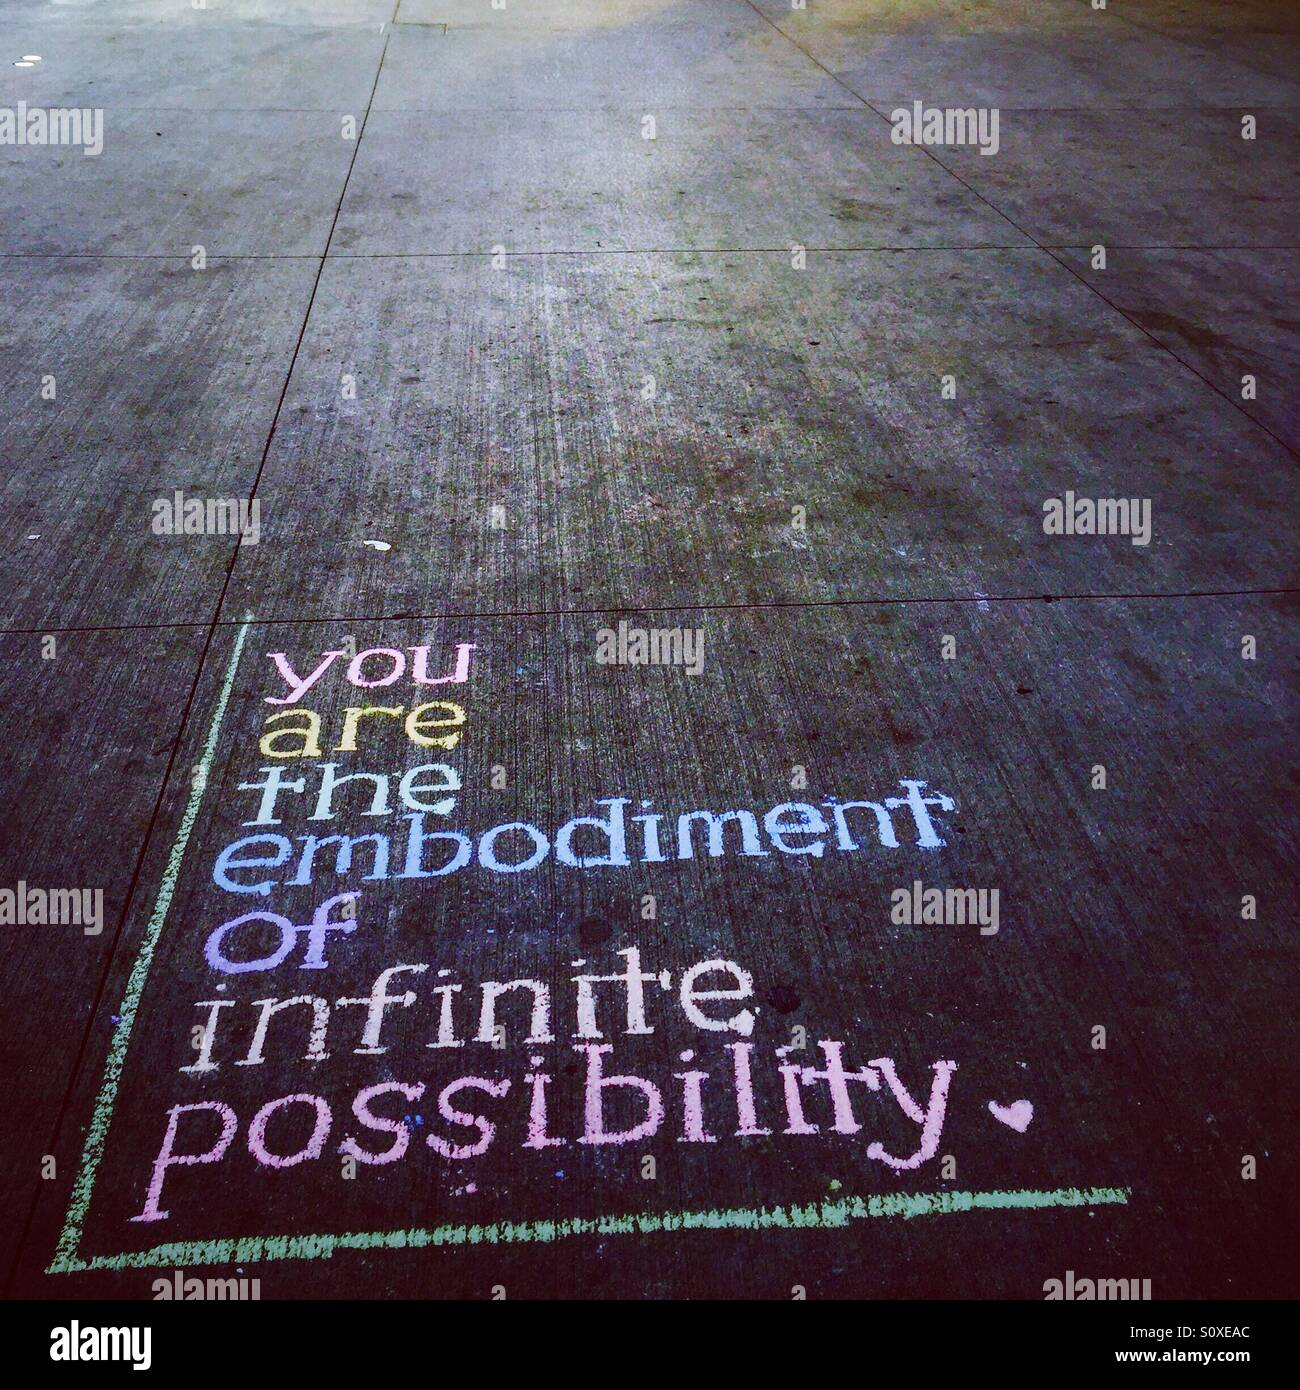 You are the embodiment of infinite possibility inspirational quote on pavement in NYC - Stock Image